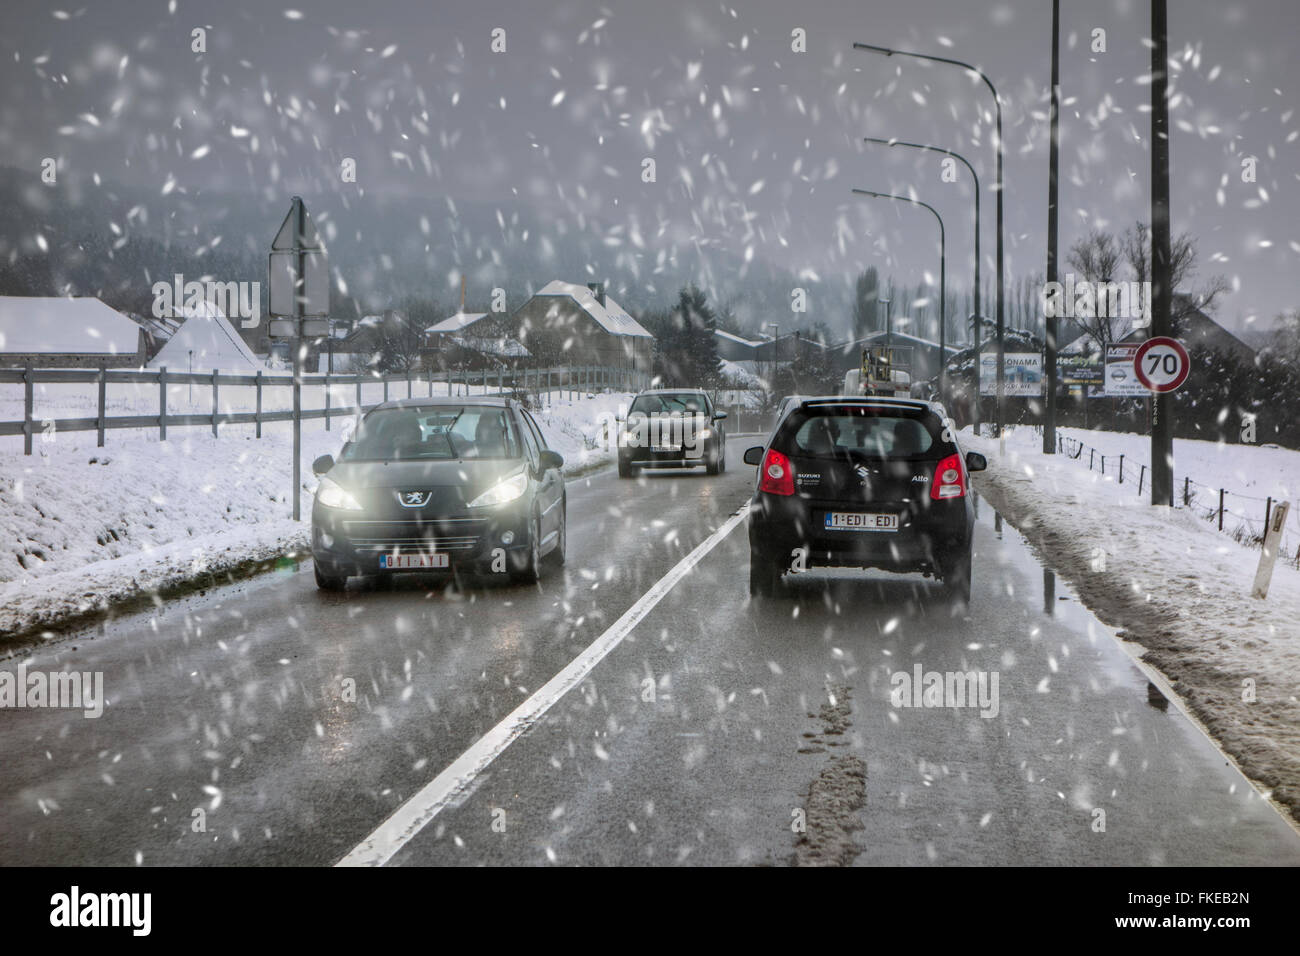 Cars on slippery road during heavy snow shower causing dangerous wintry wet driving conditions in winter / spring - Stock Image